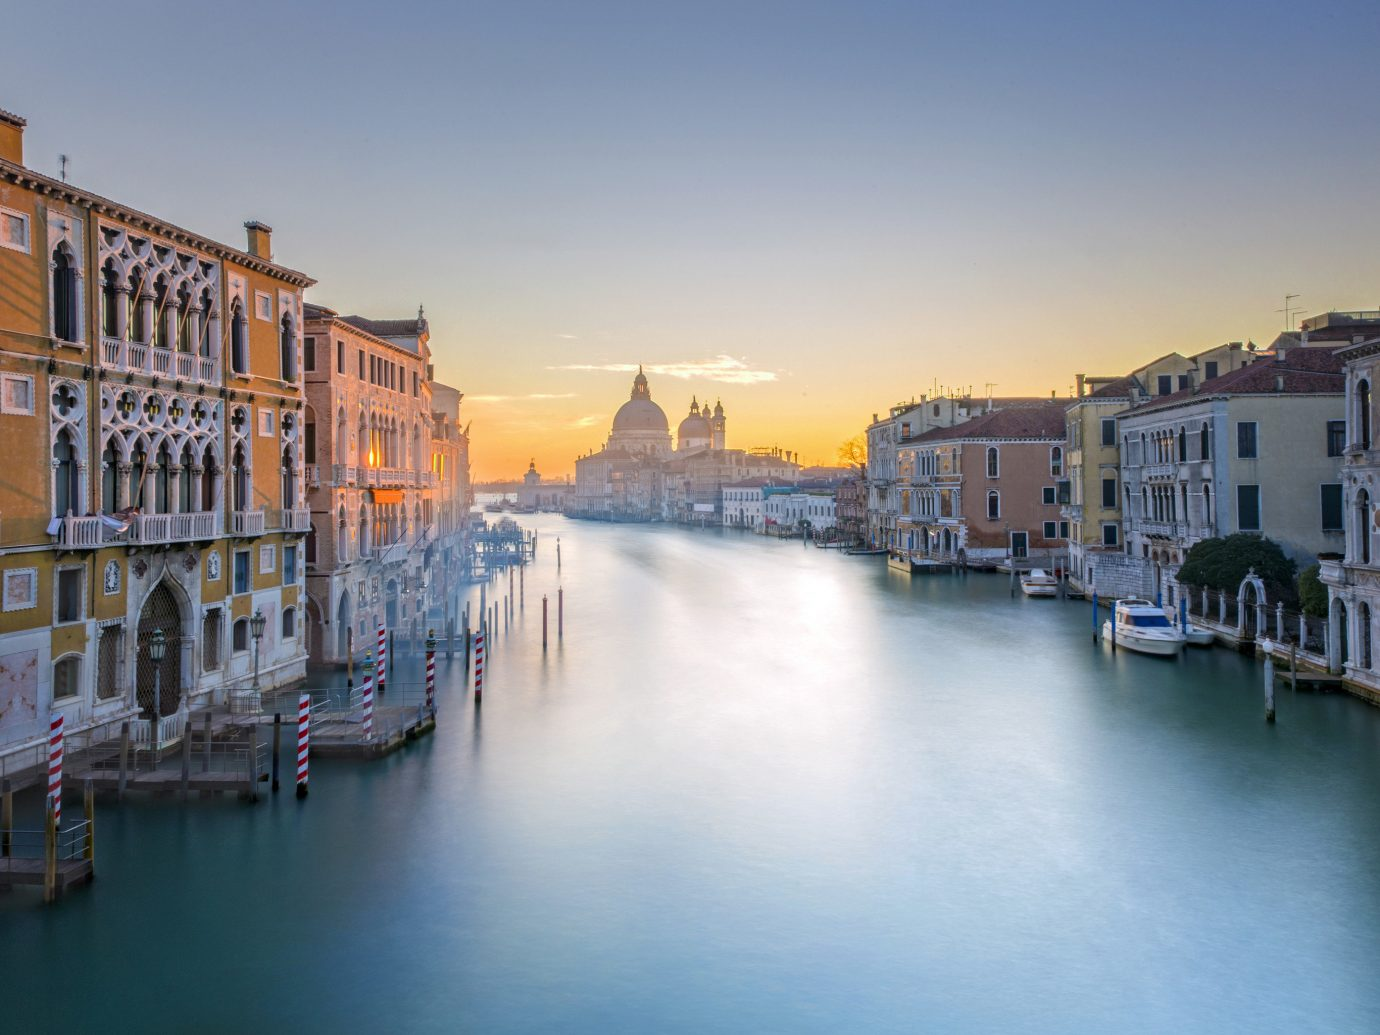 Trip Ideas sky scene water outdoor Canal body of water landform geographical feature waterway reflection Town cityscape River Harbor vehicle channel evening dock Boat Sea dusk